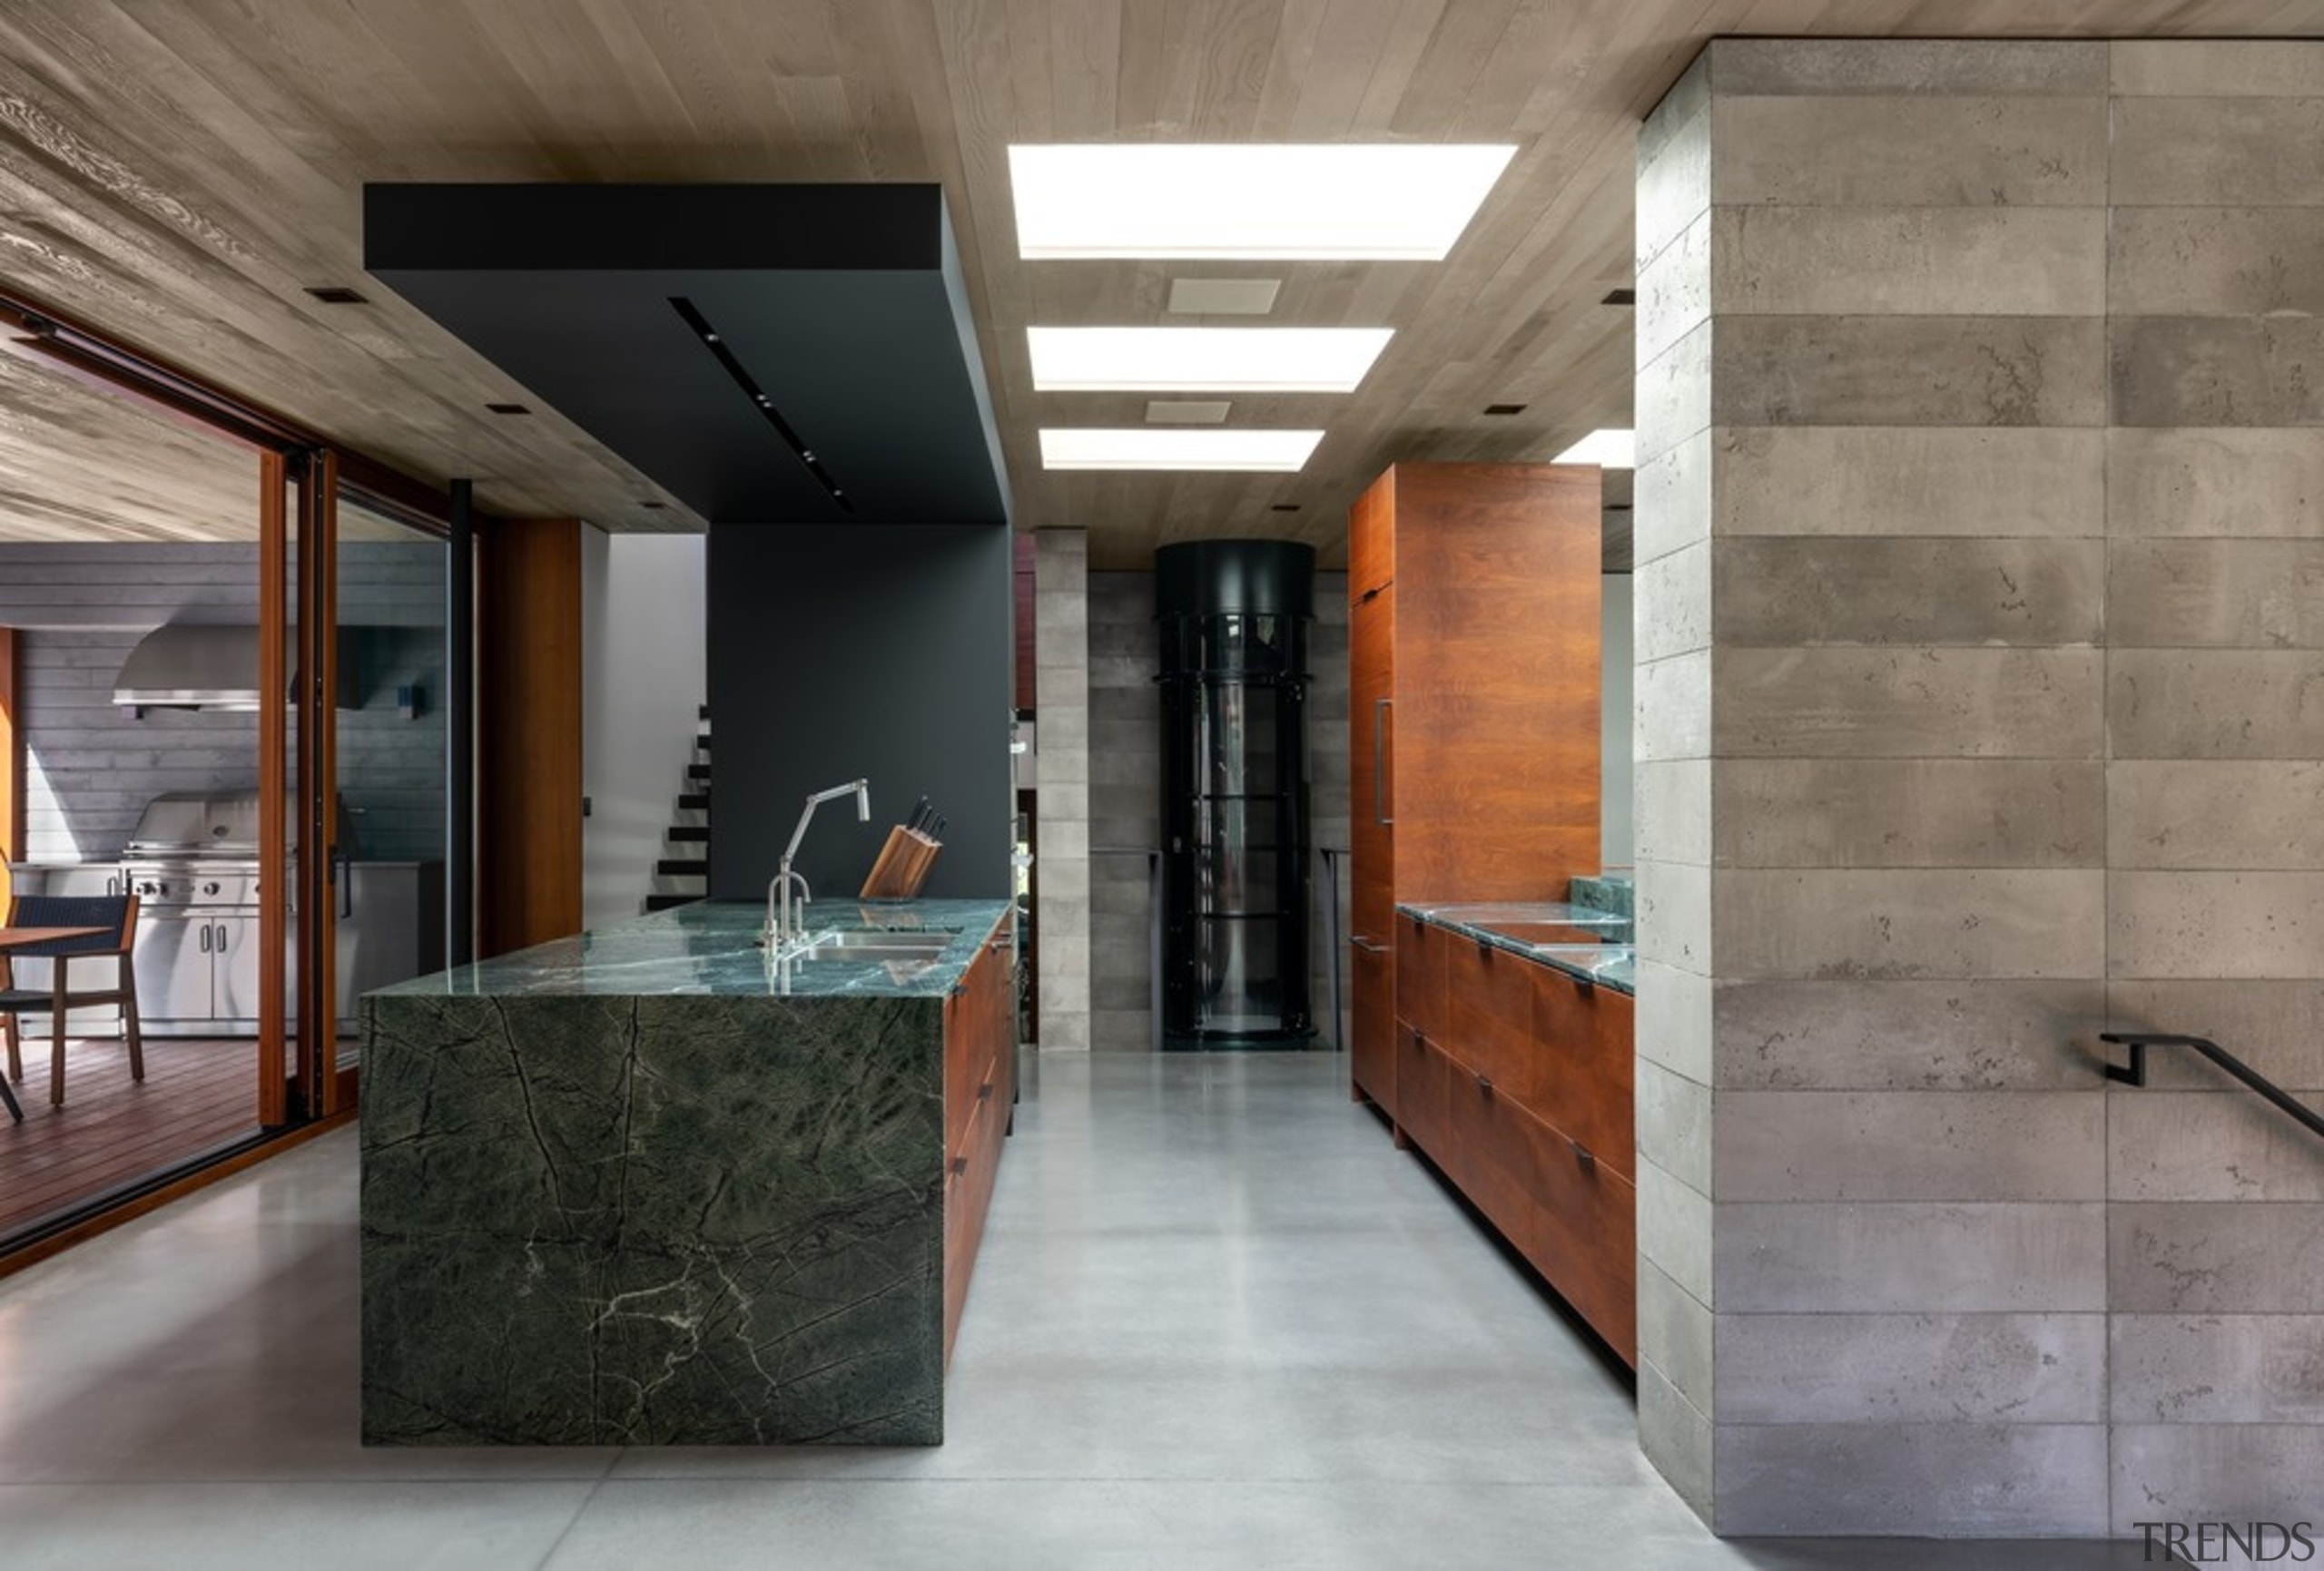 The timeless kitchen is naturally lit with a architecture, building, ceiling, concrete, floor, flooring, furniture, home, house, interior design, lobby, loft, property, room, space, tile, wall, gray, taps, tapware